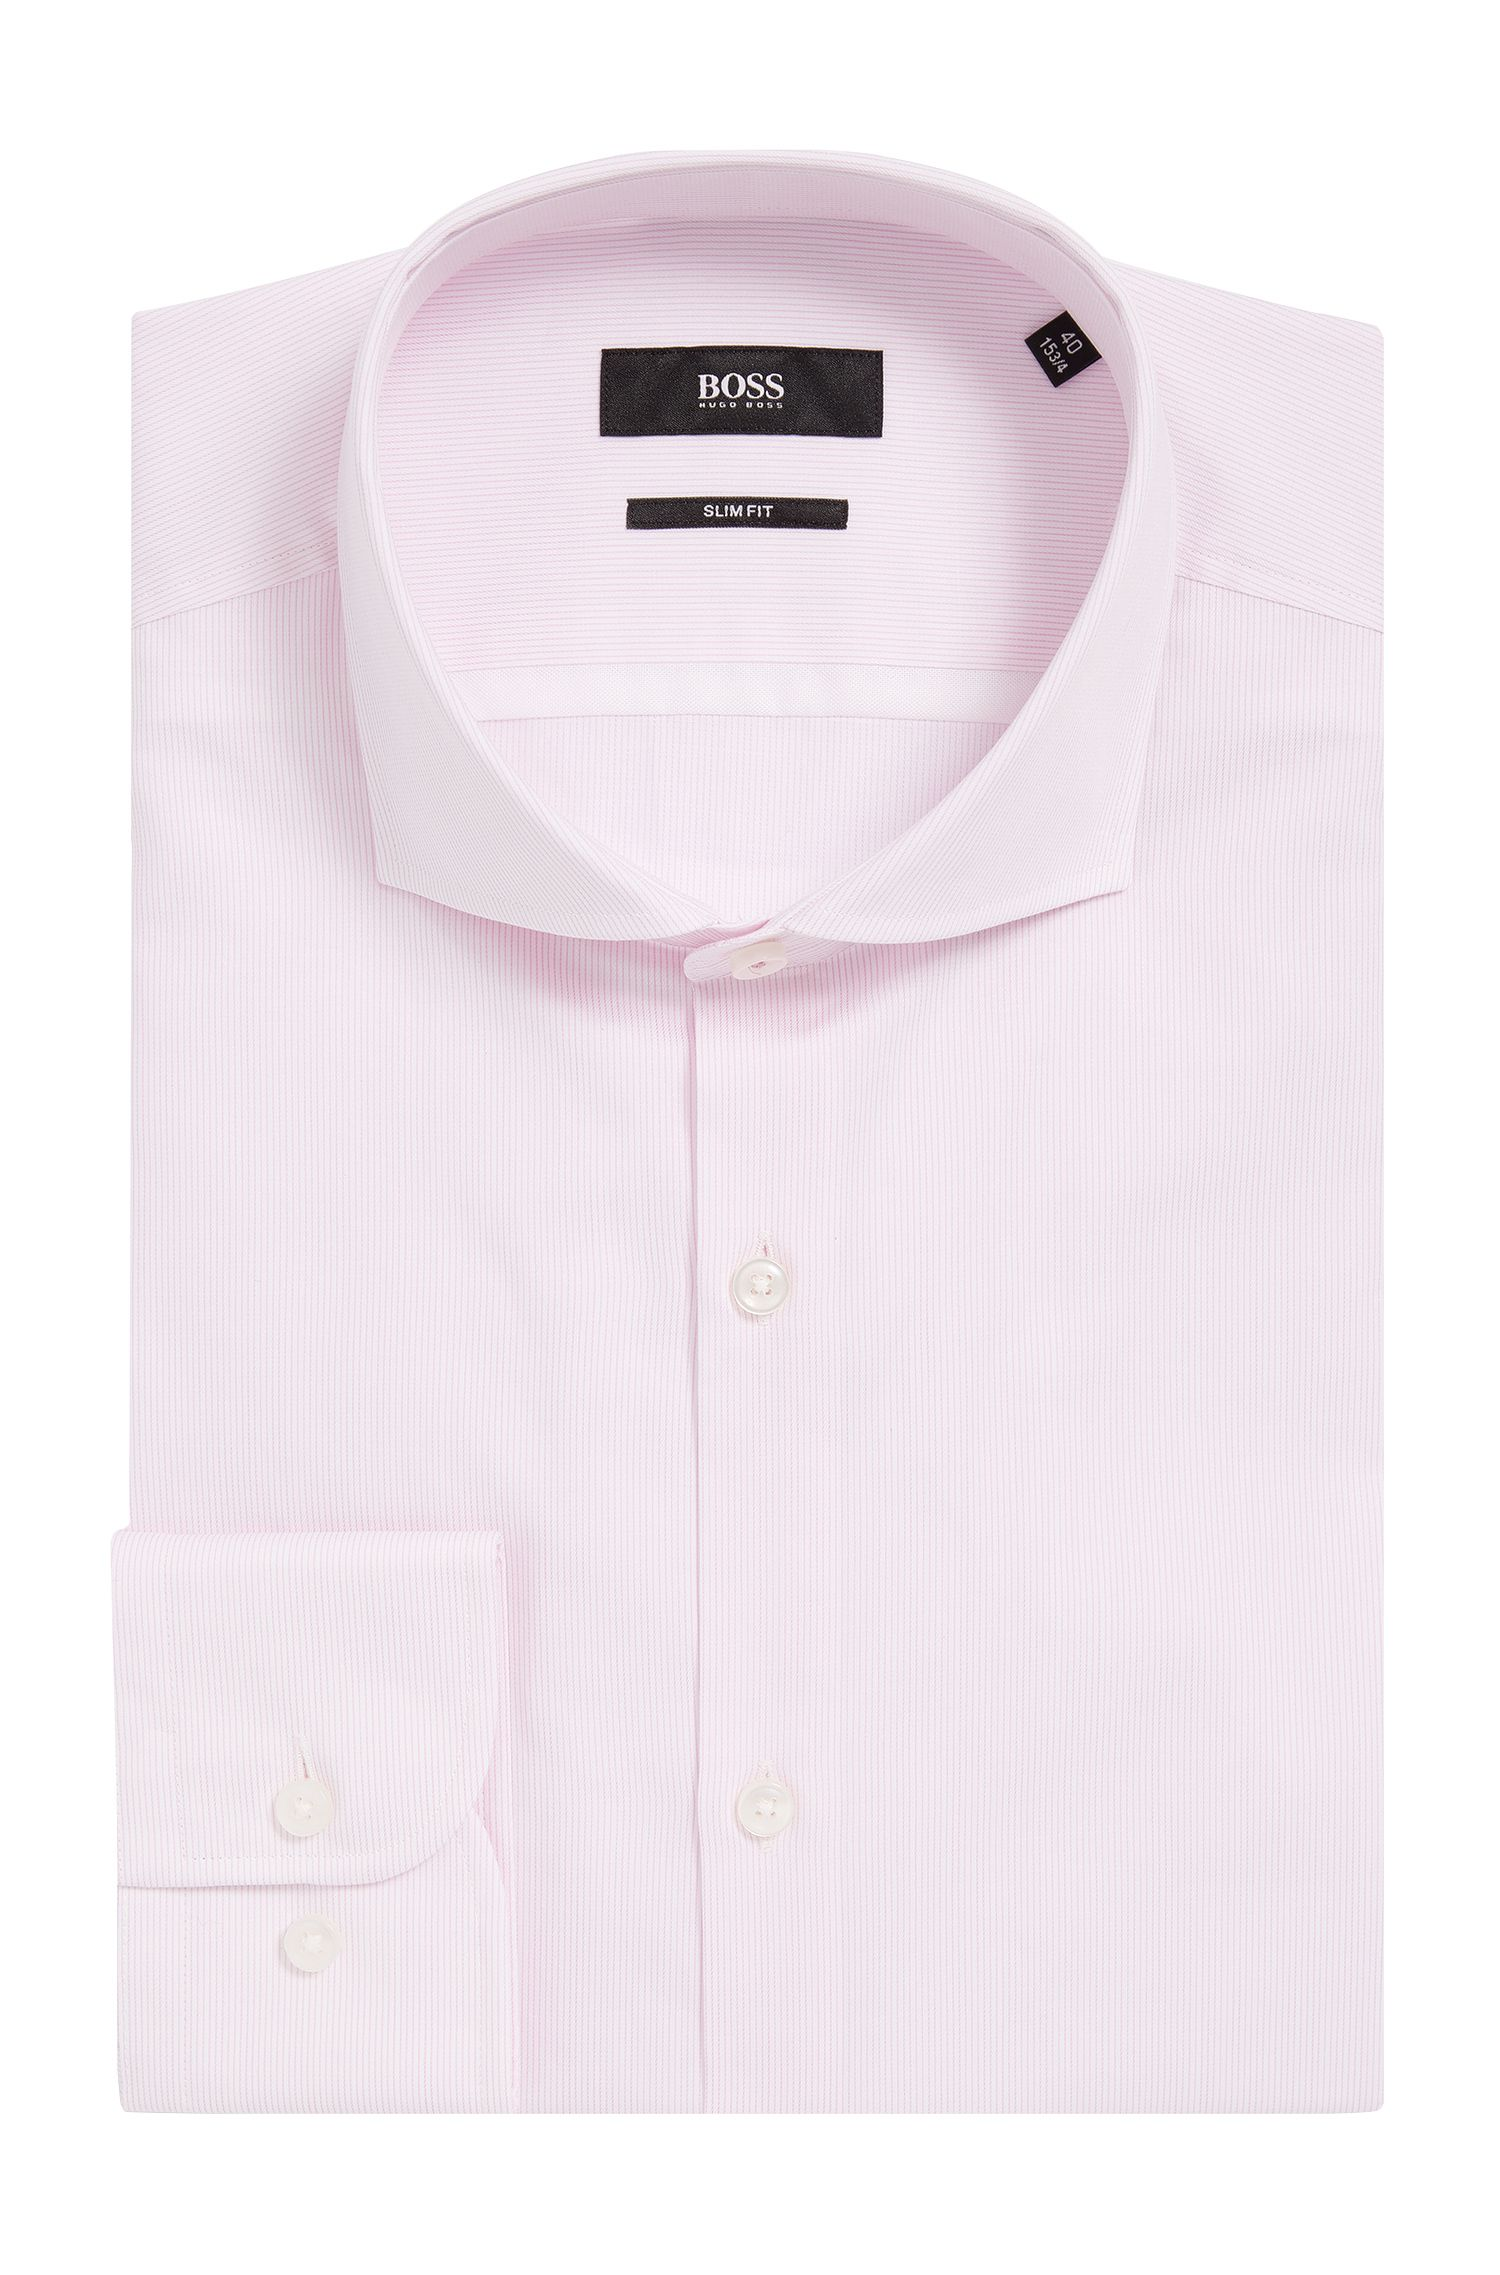 'Jerrin' | Slim Fit, Striped Cotton Dress Shirt